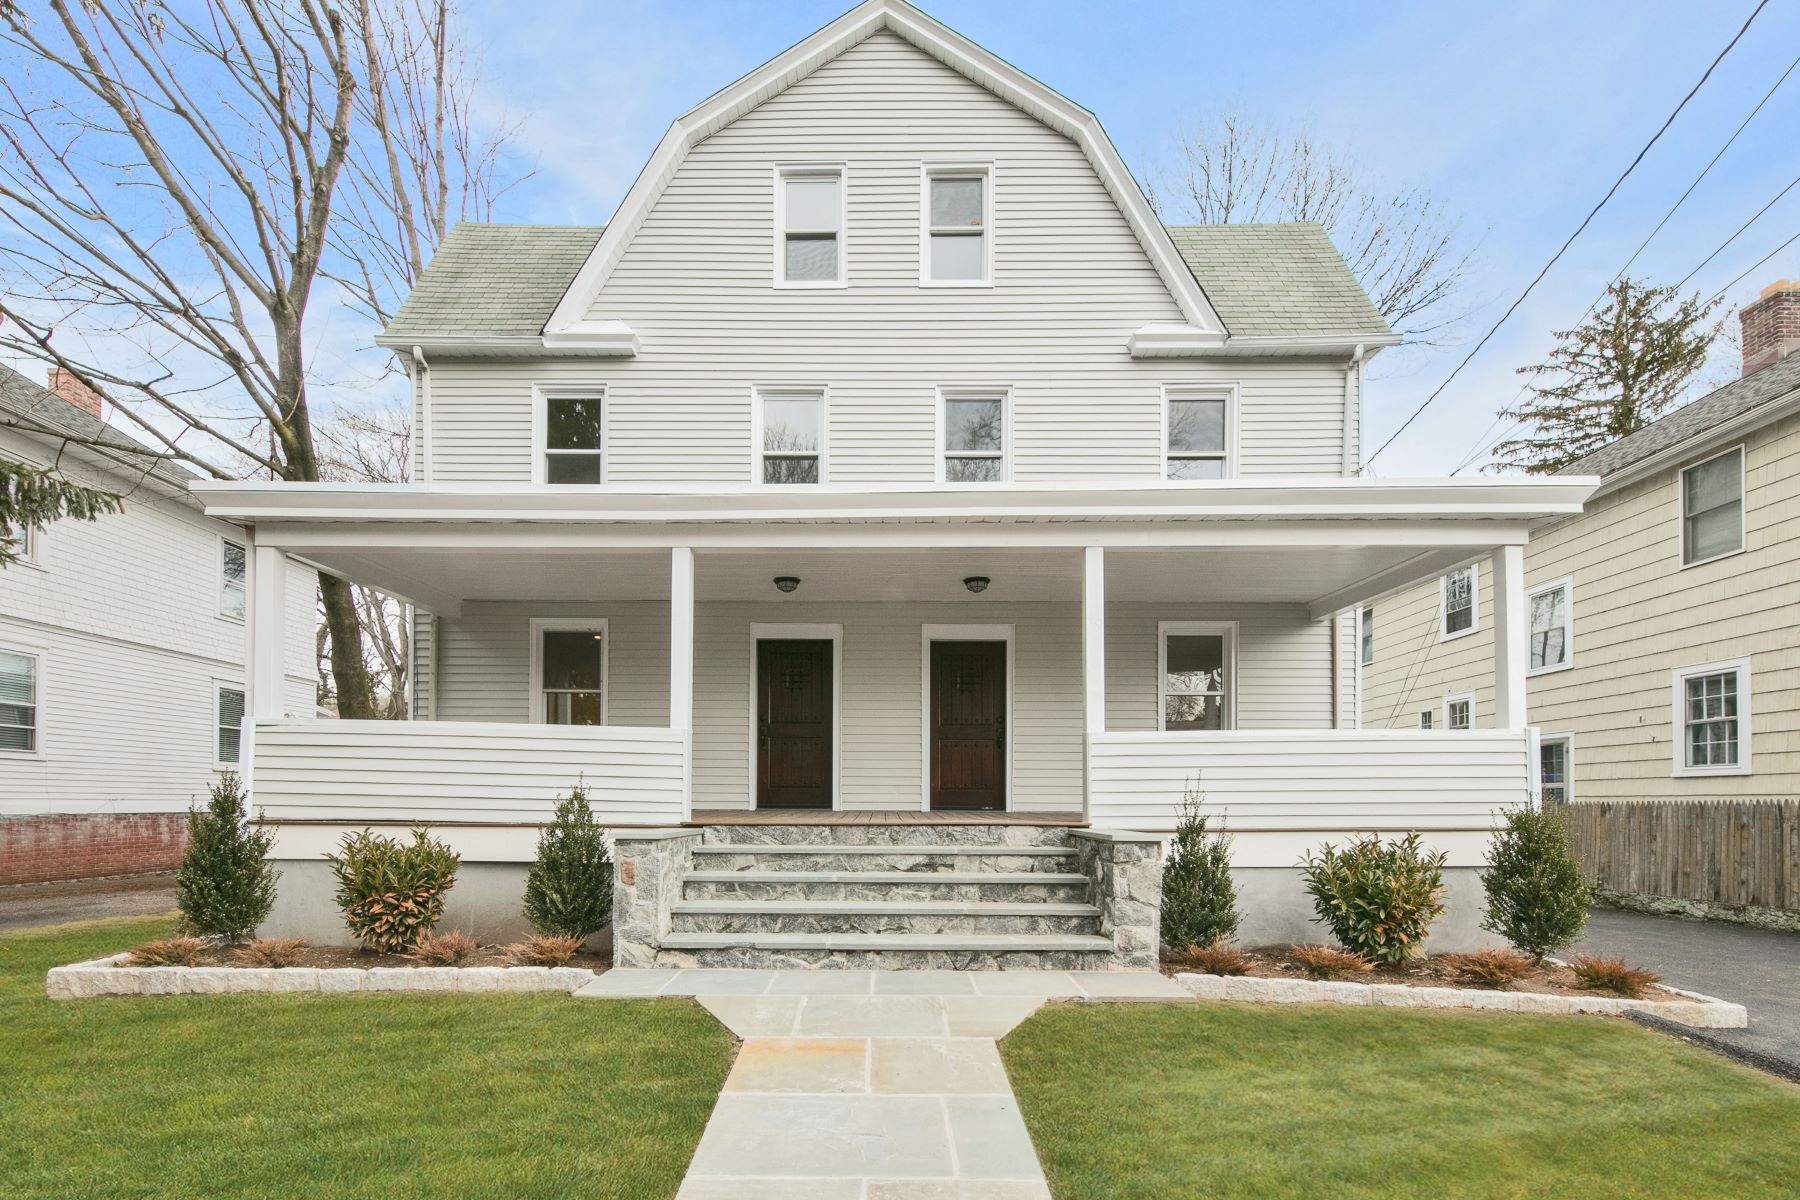 Single Family Home for Rent at Modern Victorian Townhome with Charm 49 Palisade Road, Rye, New York, 10580 United States